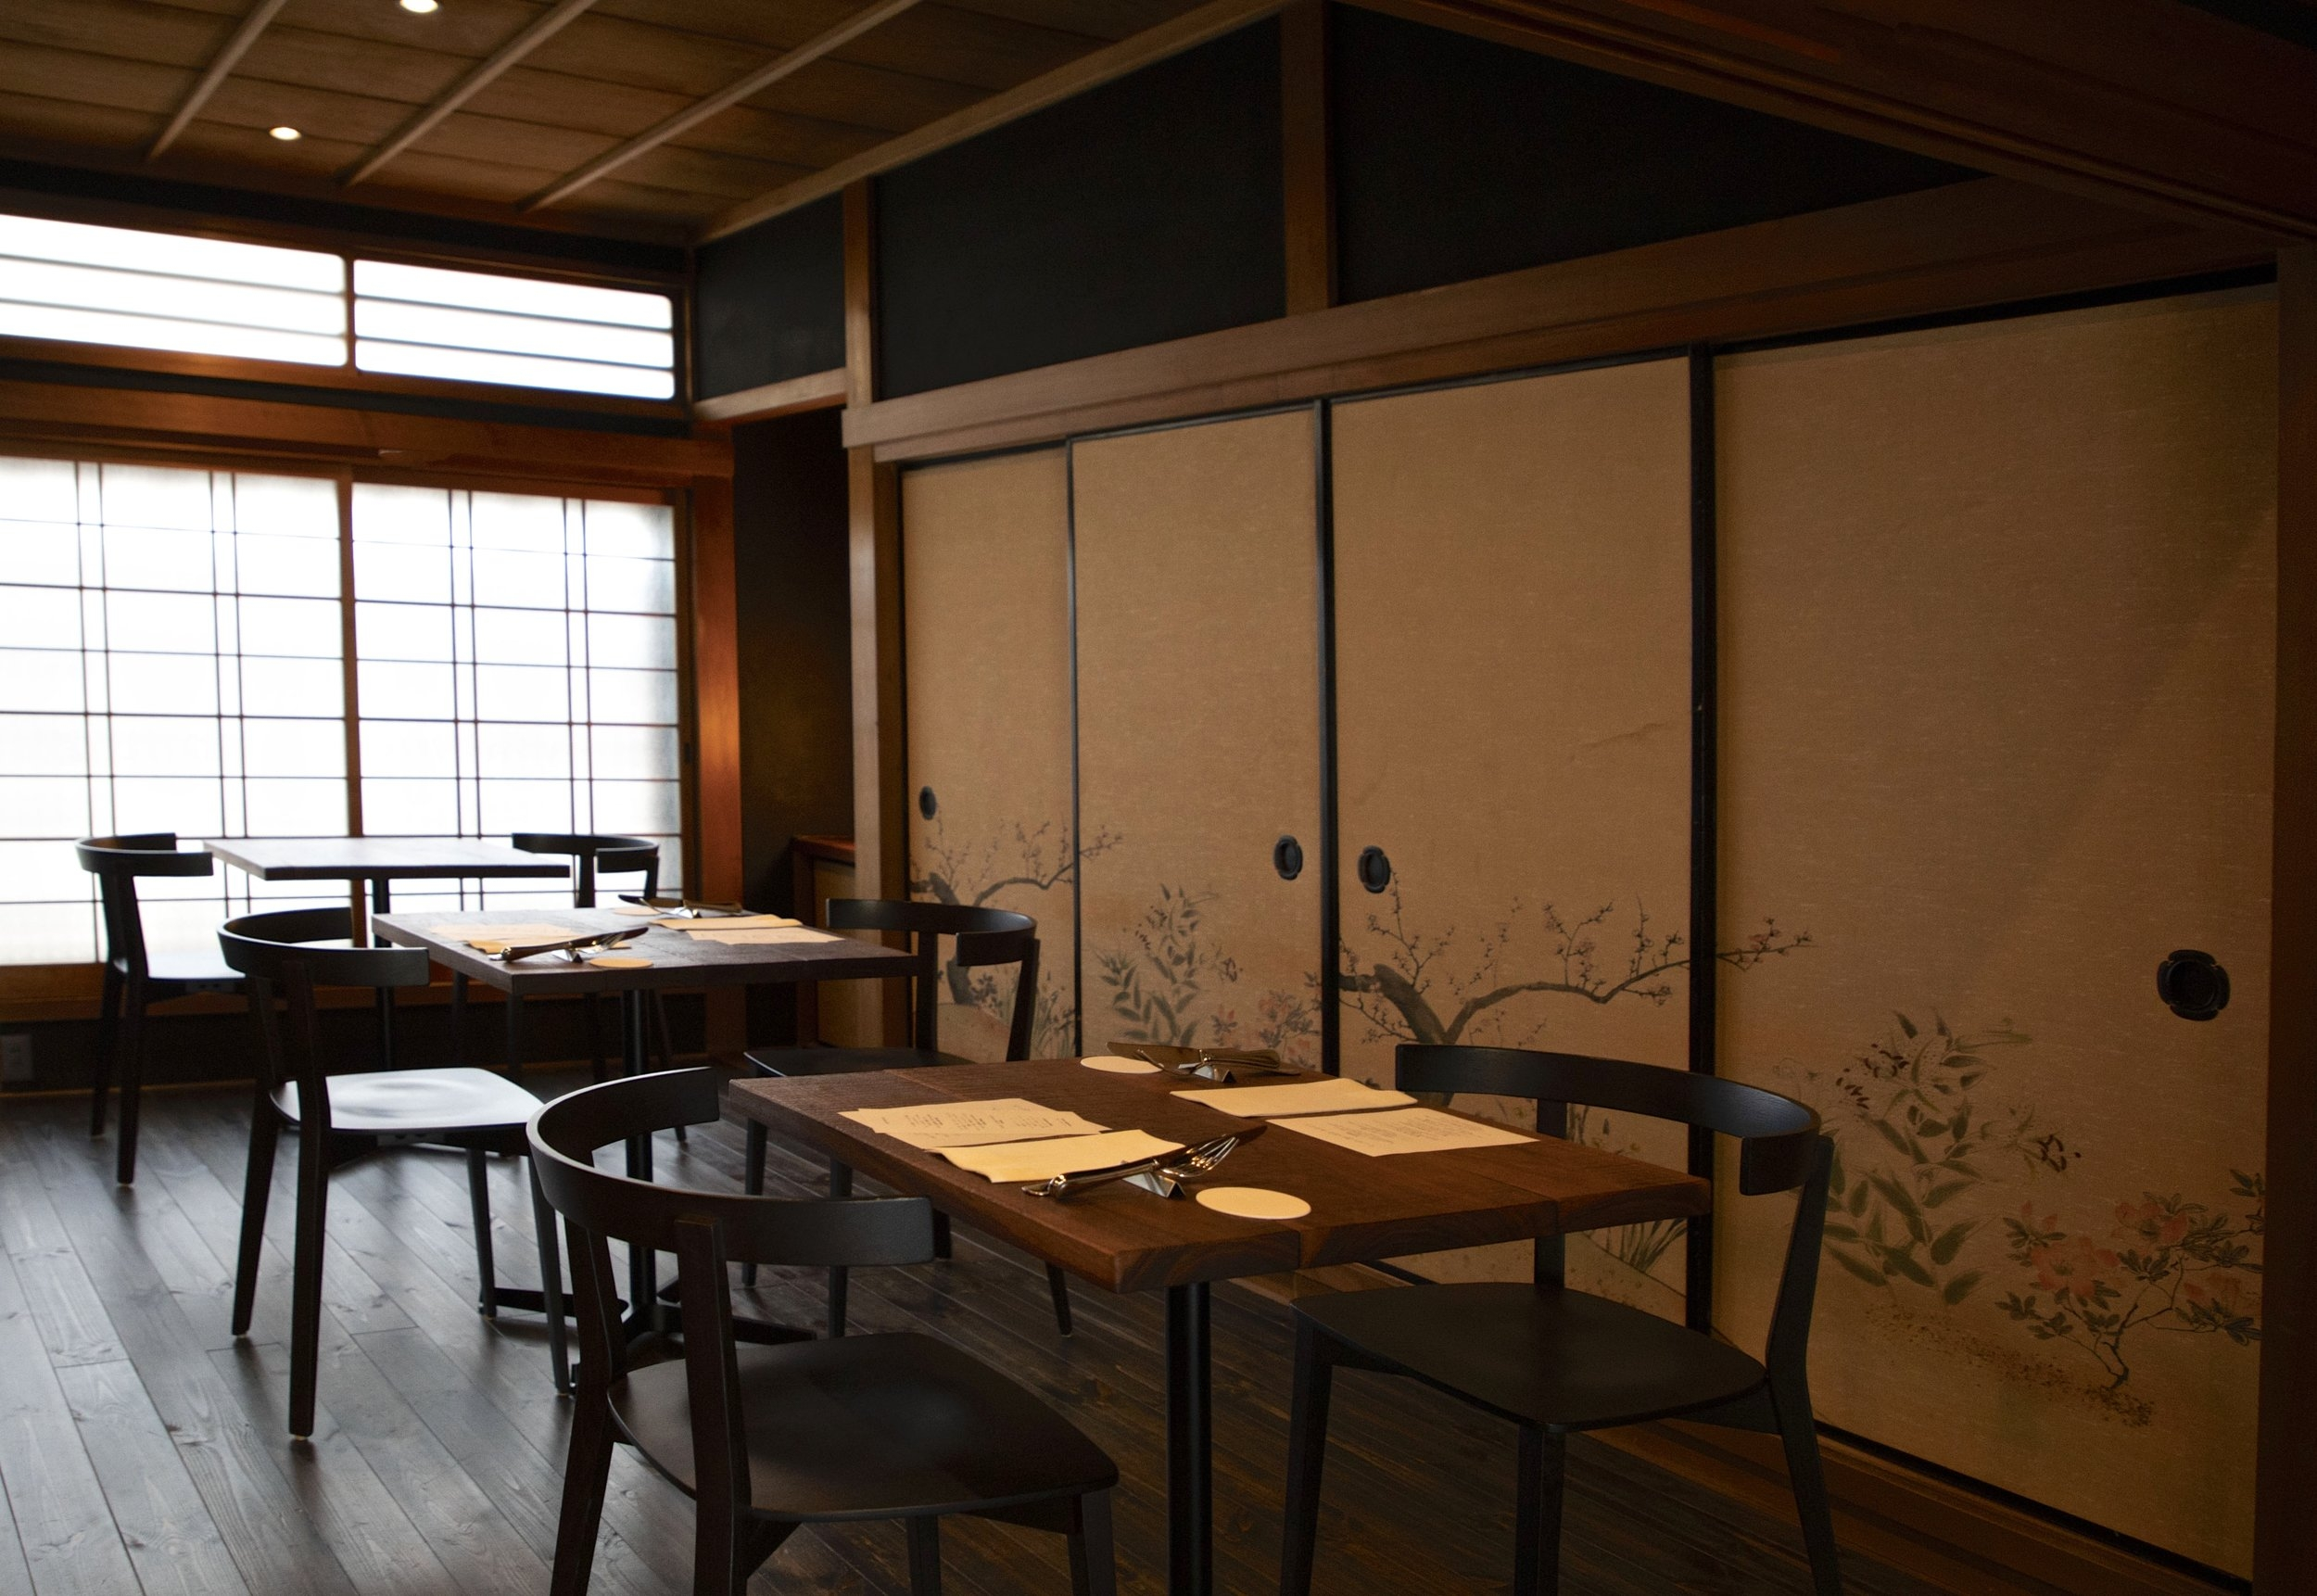 The renovation of the 120 year-old  ochaya  (geisha tea house), in which Aceto is located, preserved much of the building's old details, including the painted sliding doors in the dining room.